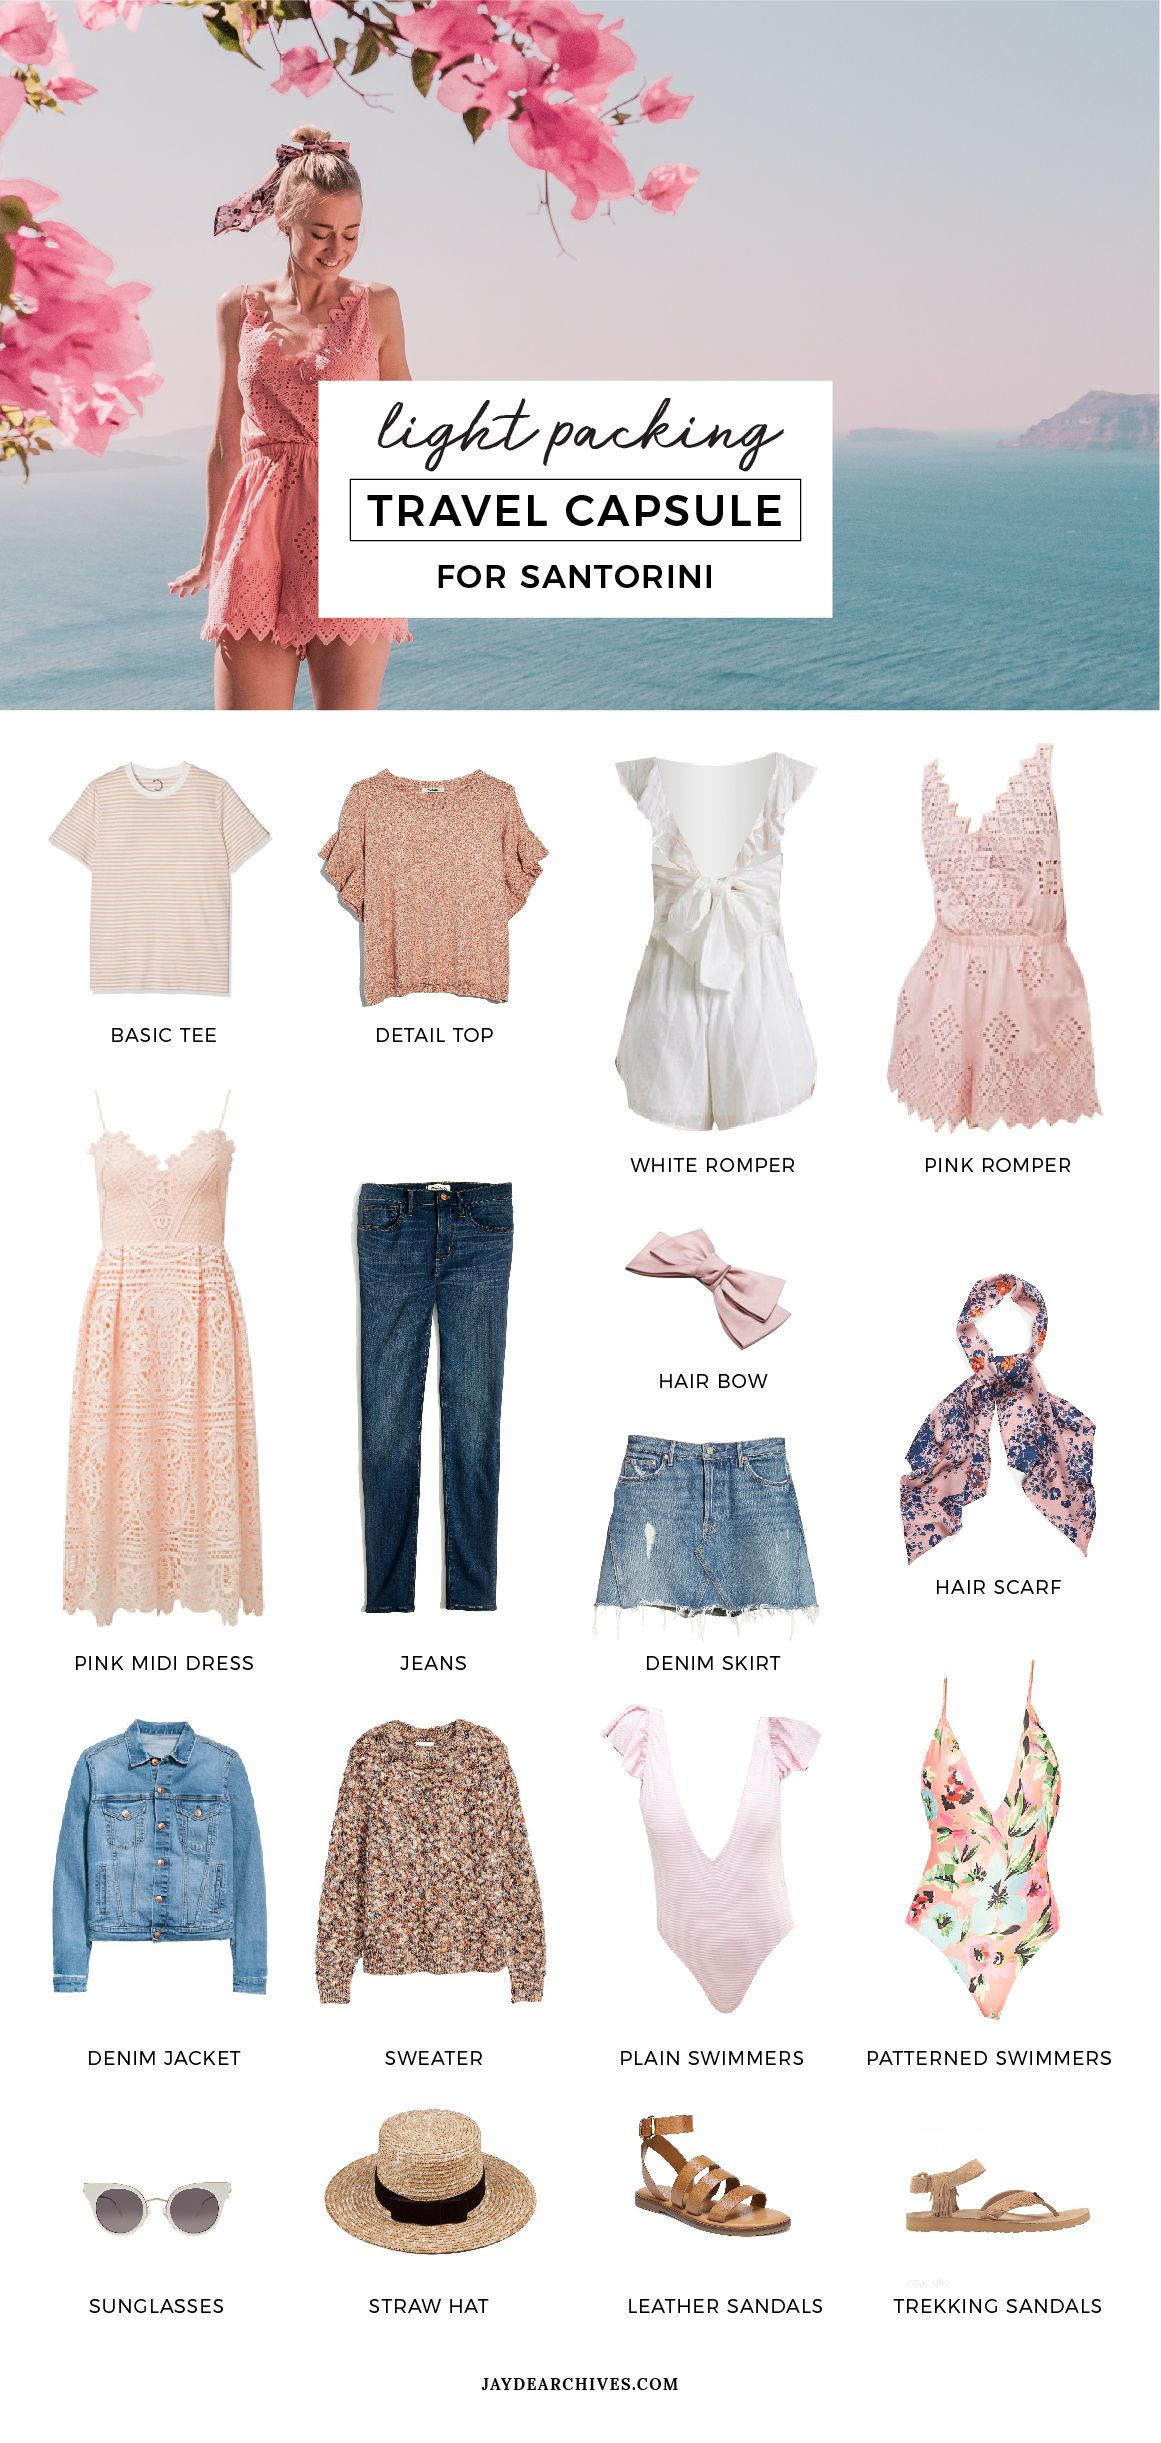 Travel Capsule Wardrobe for Santorini #travelwardrobesummer